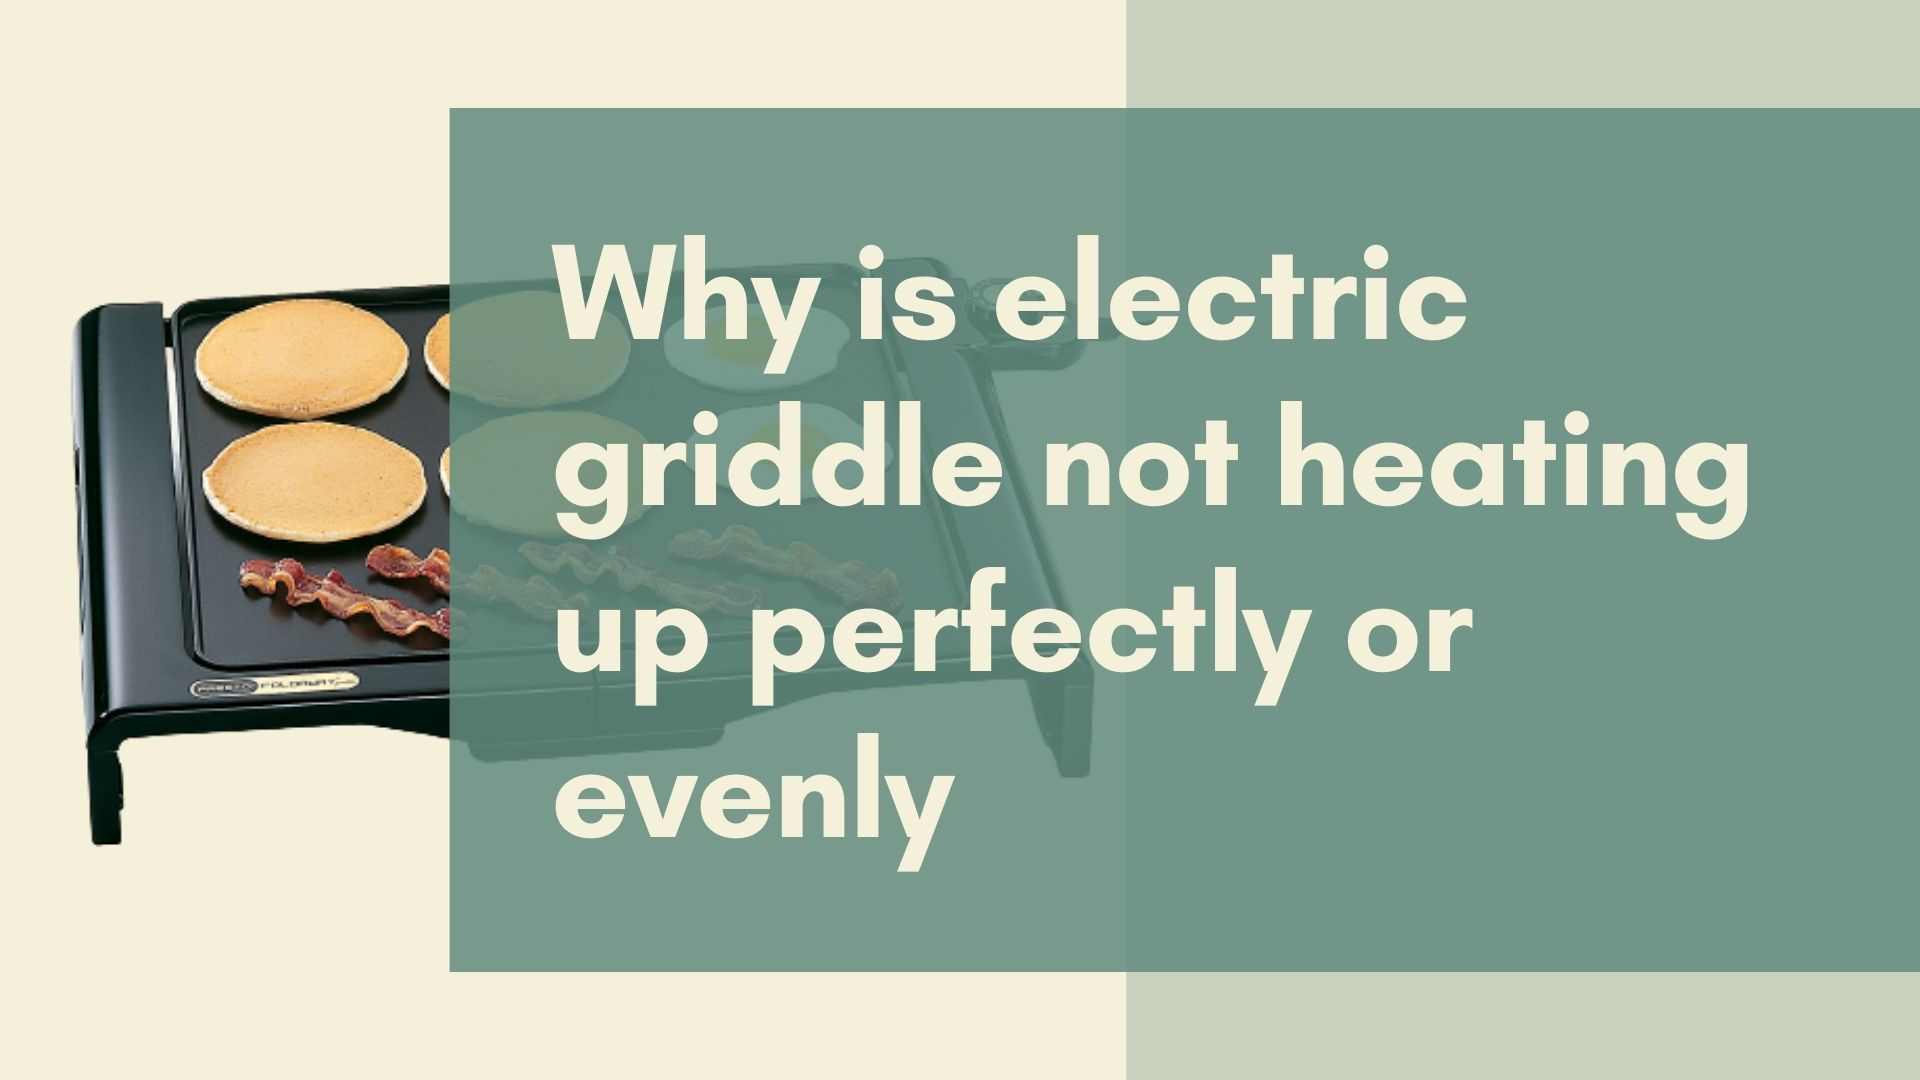 Electric griddle not heating up